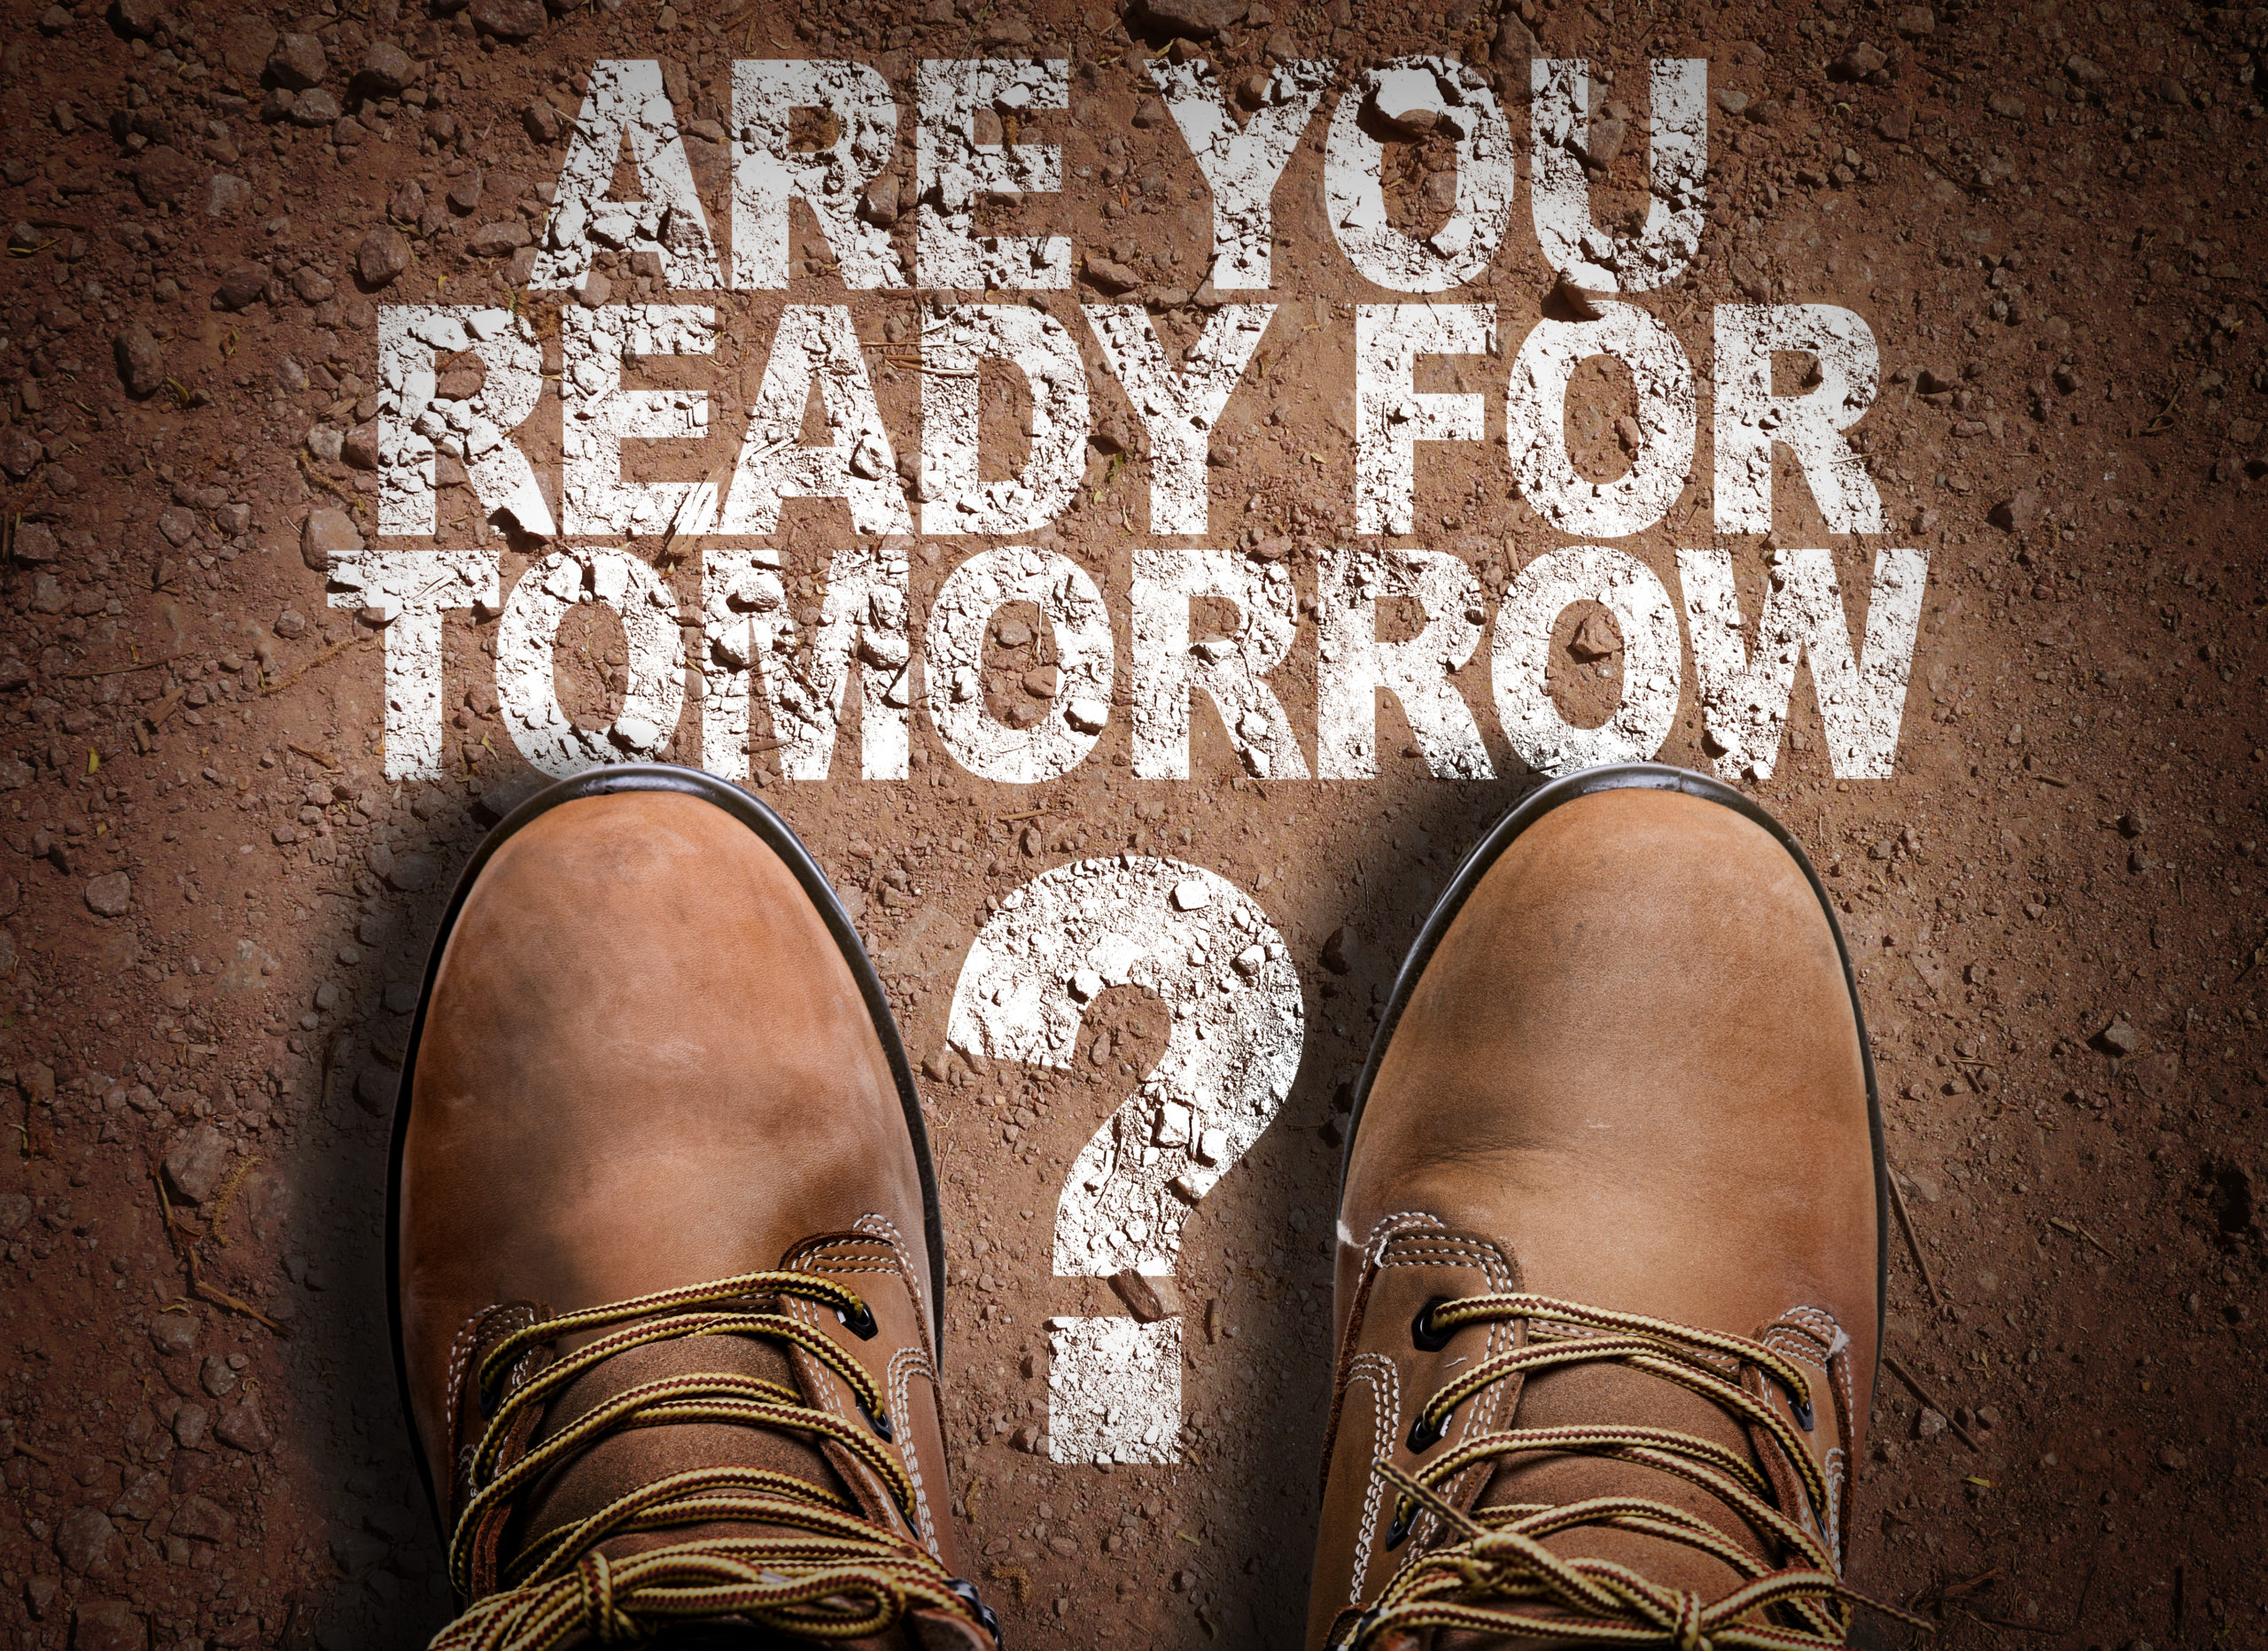 Top View of Boot on the trail with the text: Are You Ready For Tomorrow?